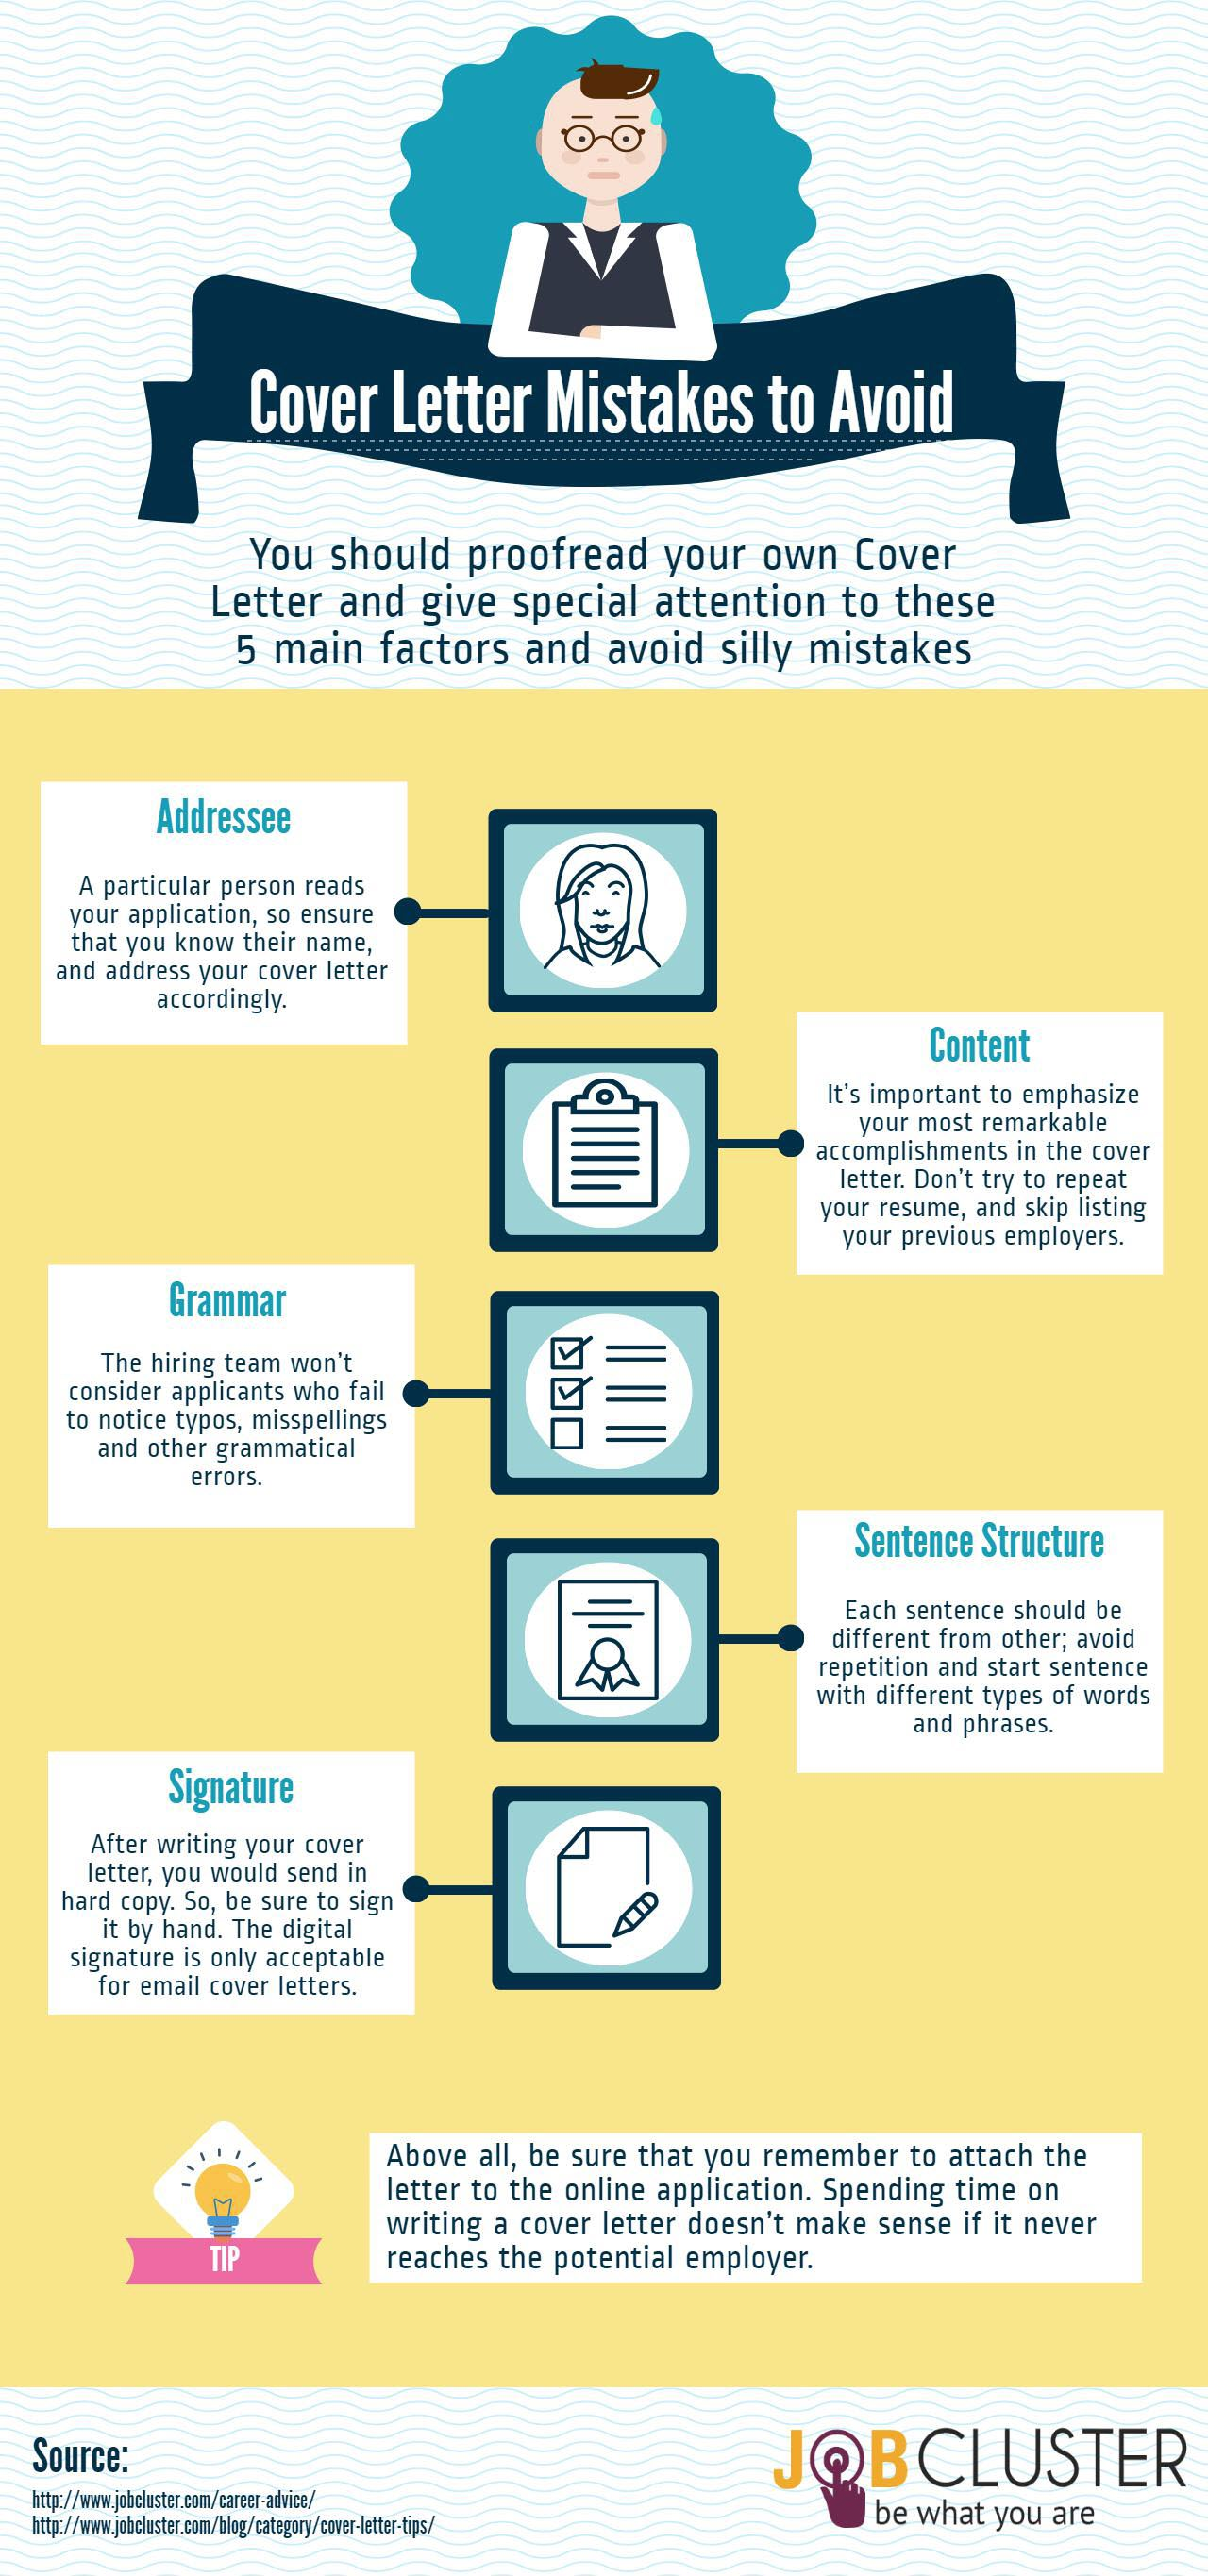 common resume mistakes job resume and cover letter examples 5 common resume mistakes job common resume mistakes to avoid business news daily common mistakes while